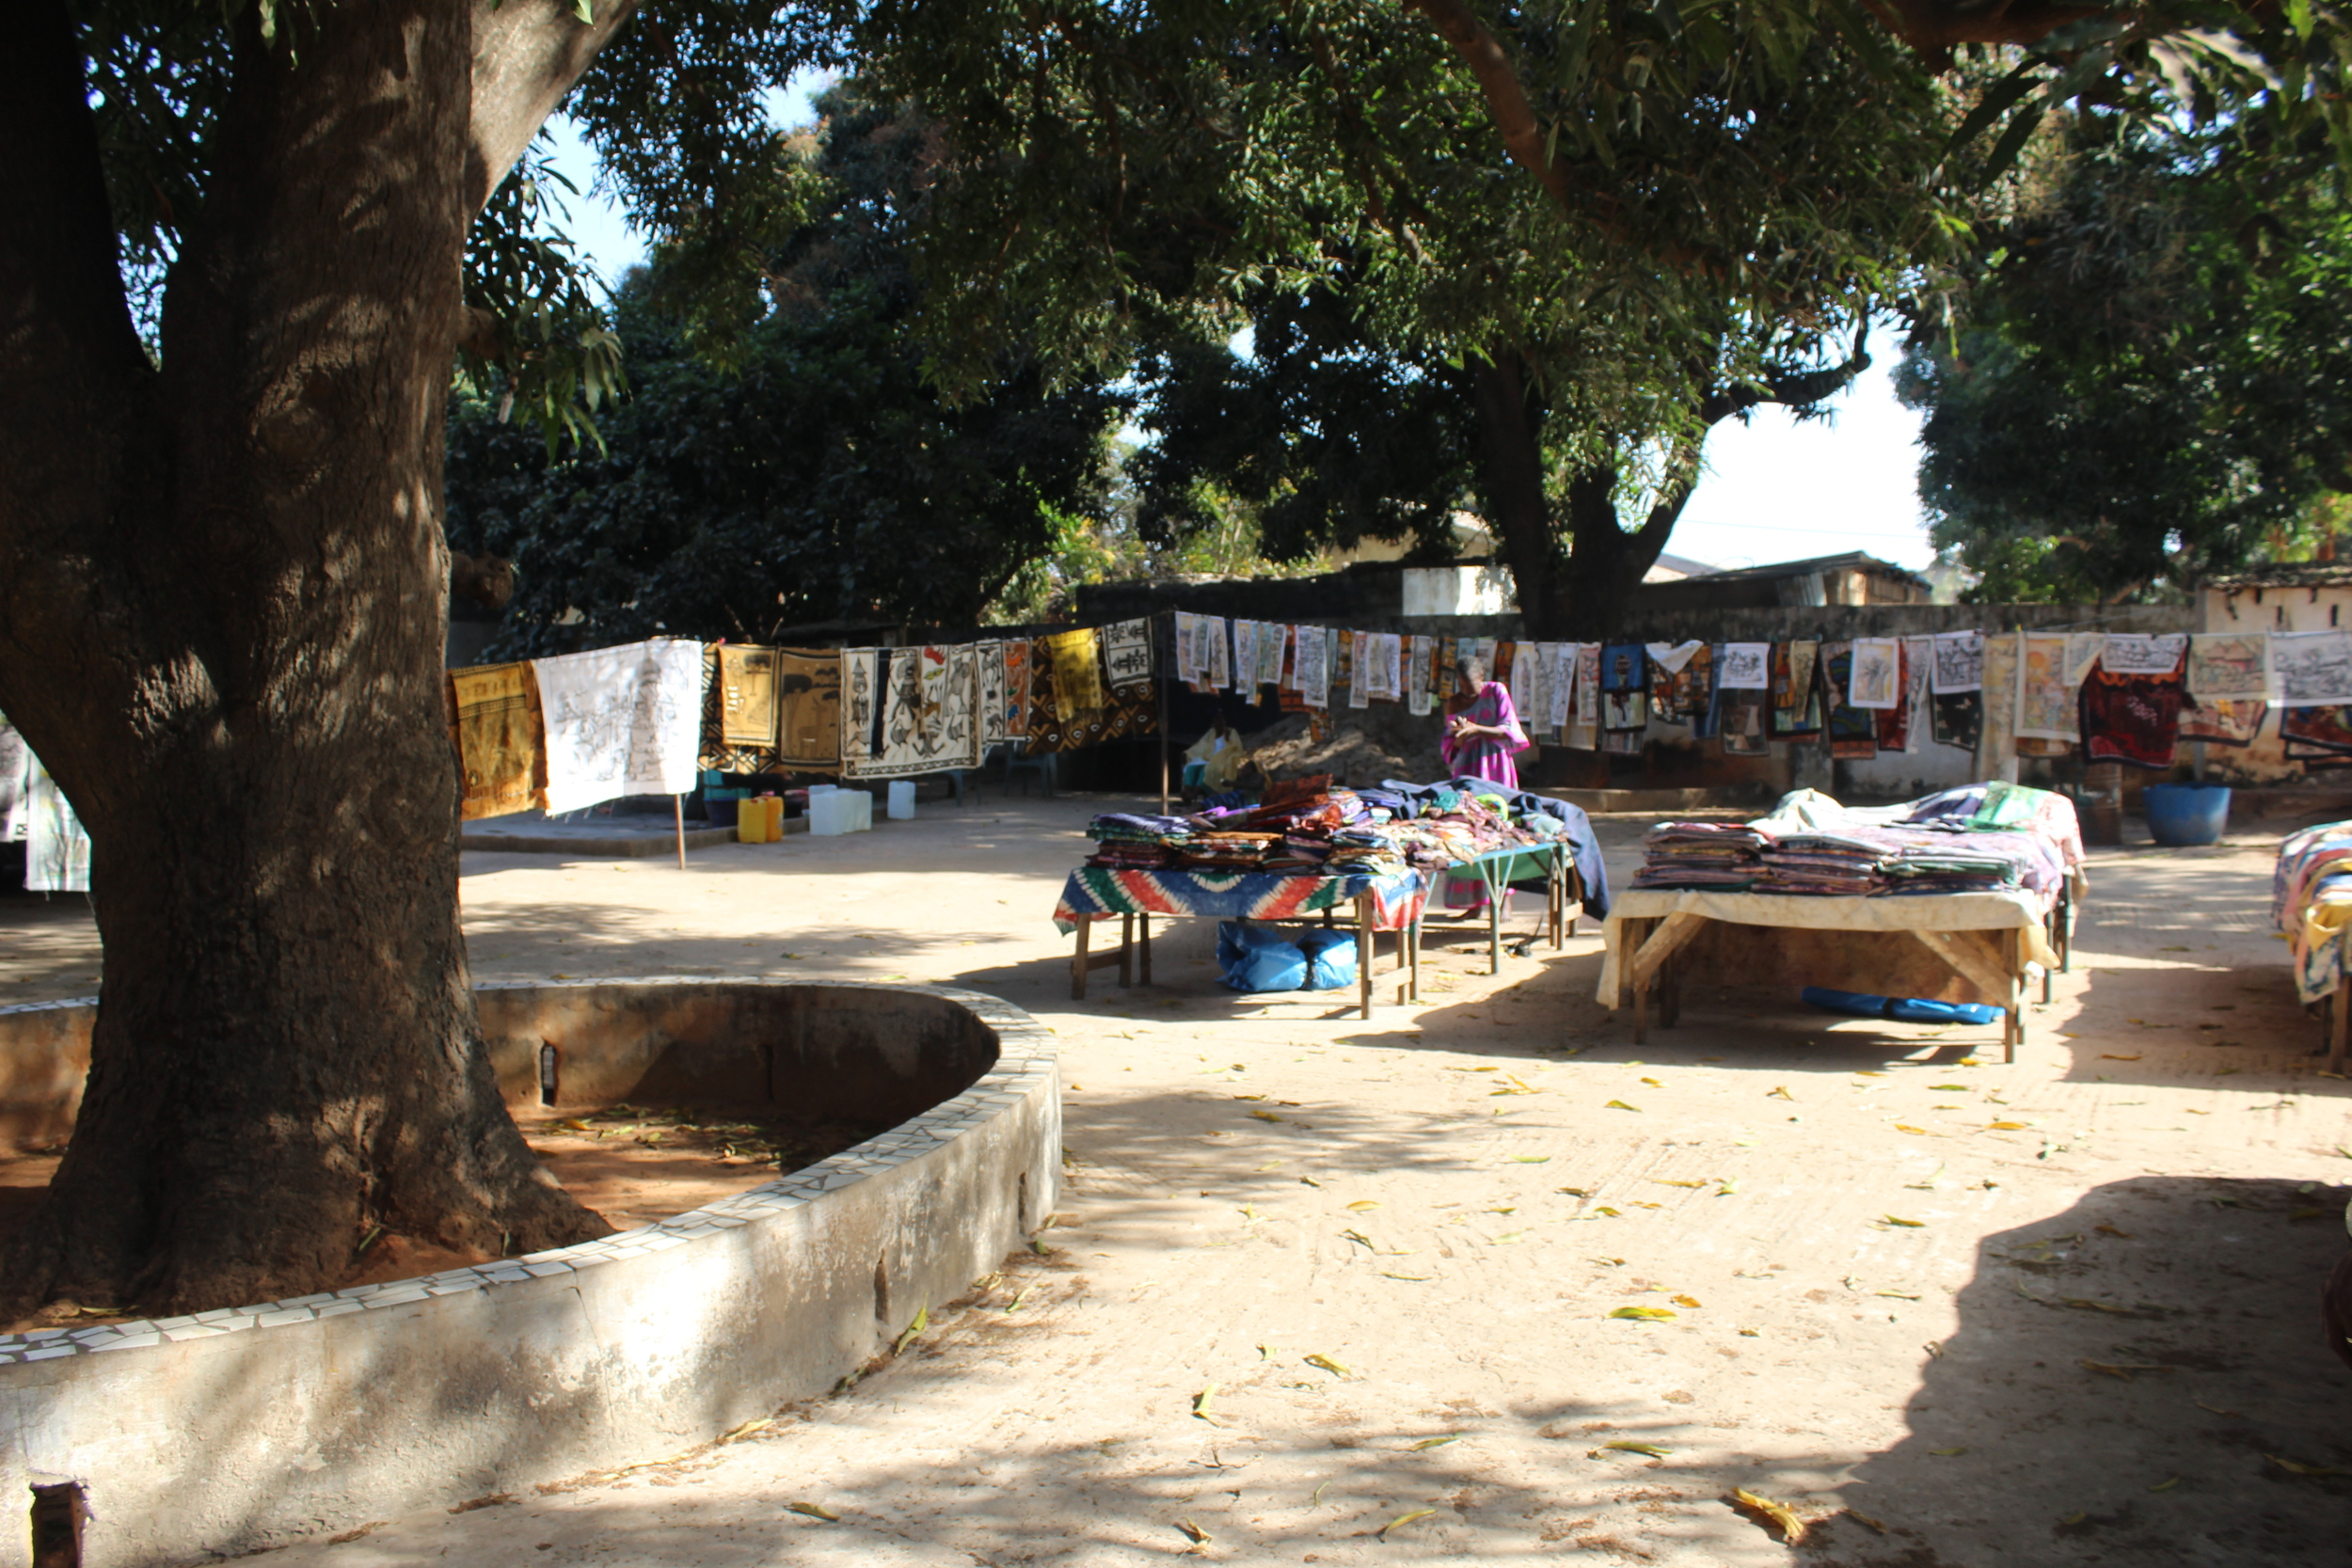 Artwork hung out to dry under a large Mango tree. The central tables contain hundreds of folded and ironed fabric or handmade finished items such as tablecloths and bedding sets.